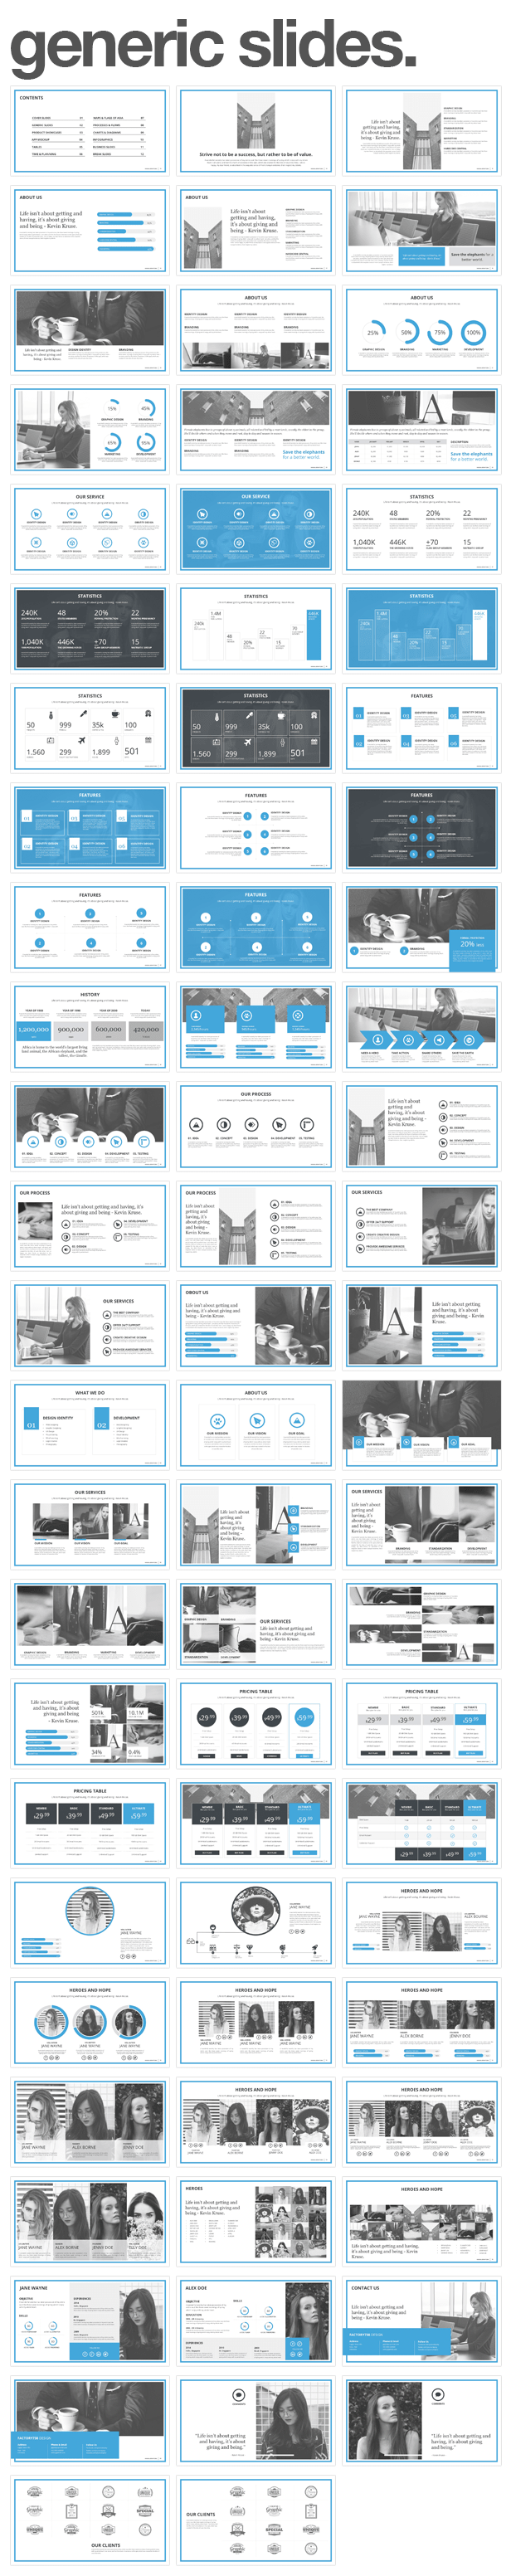 generic slides Monday PowerPoint Template (PowerPoint Templates)